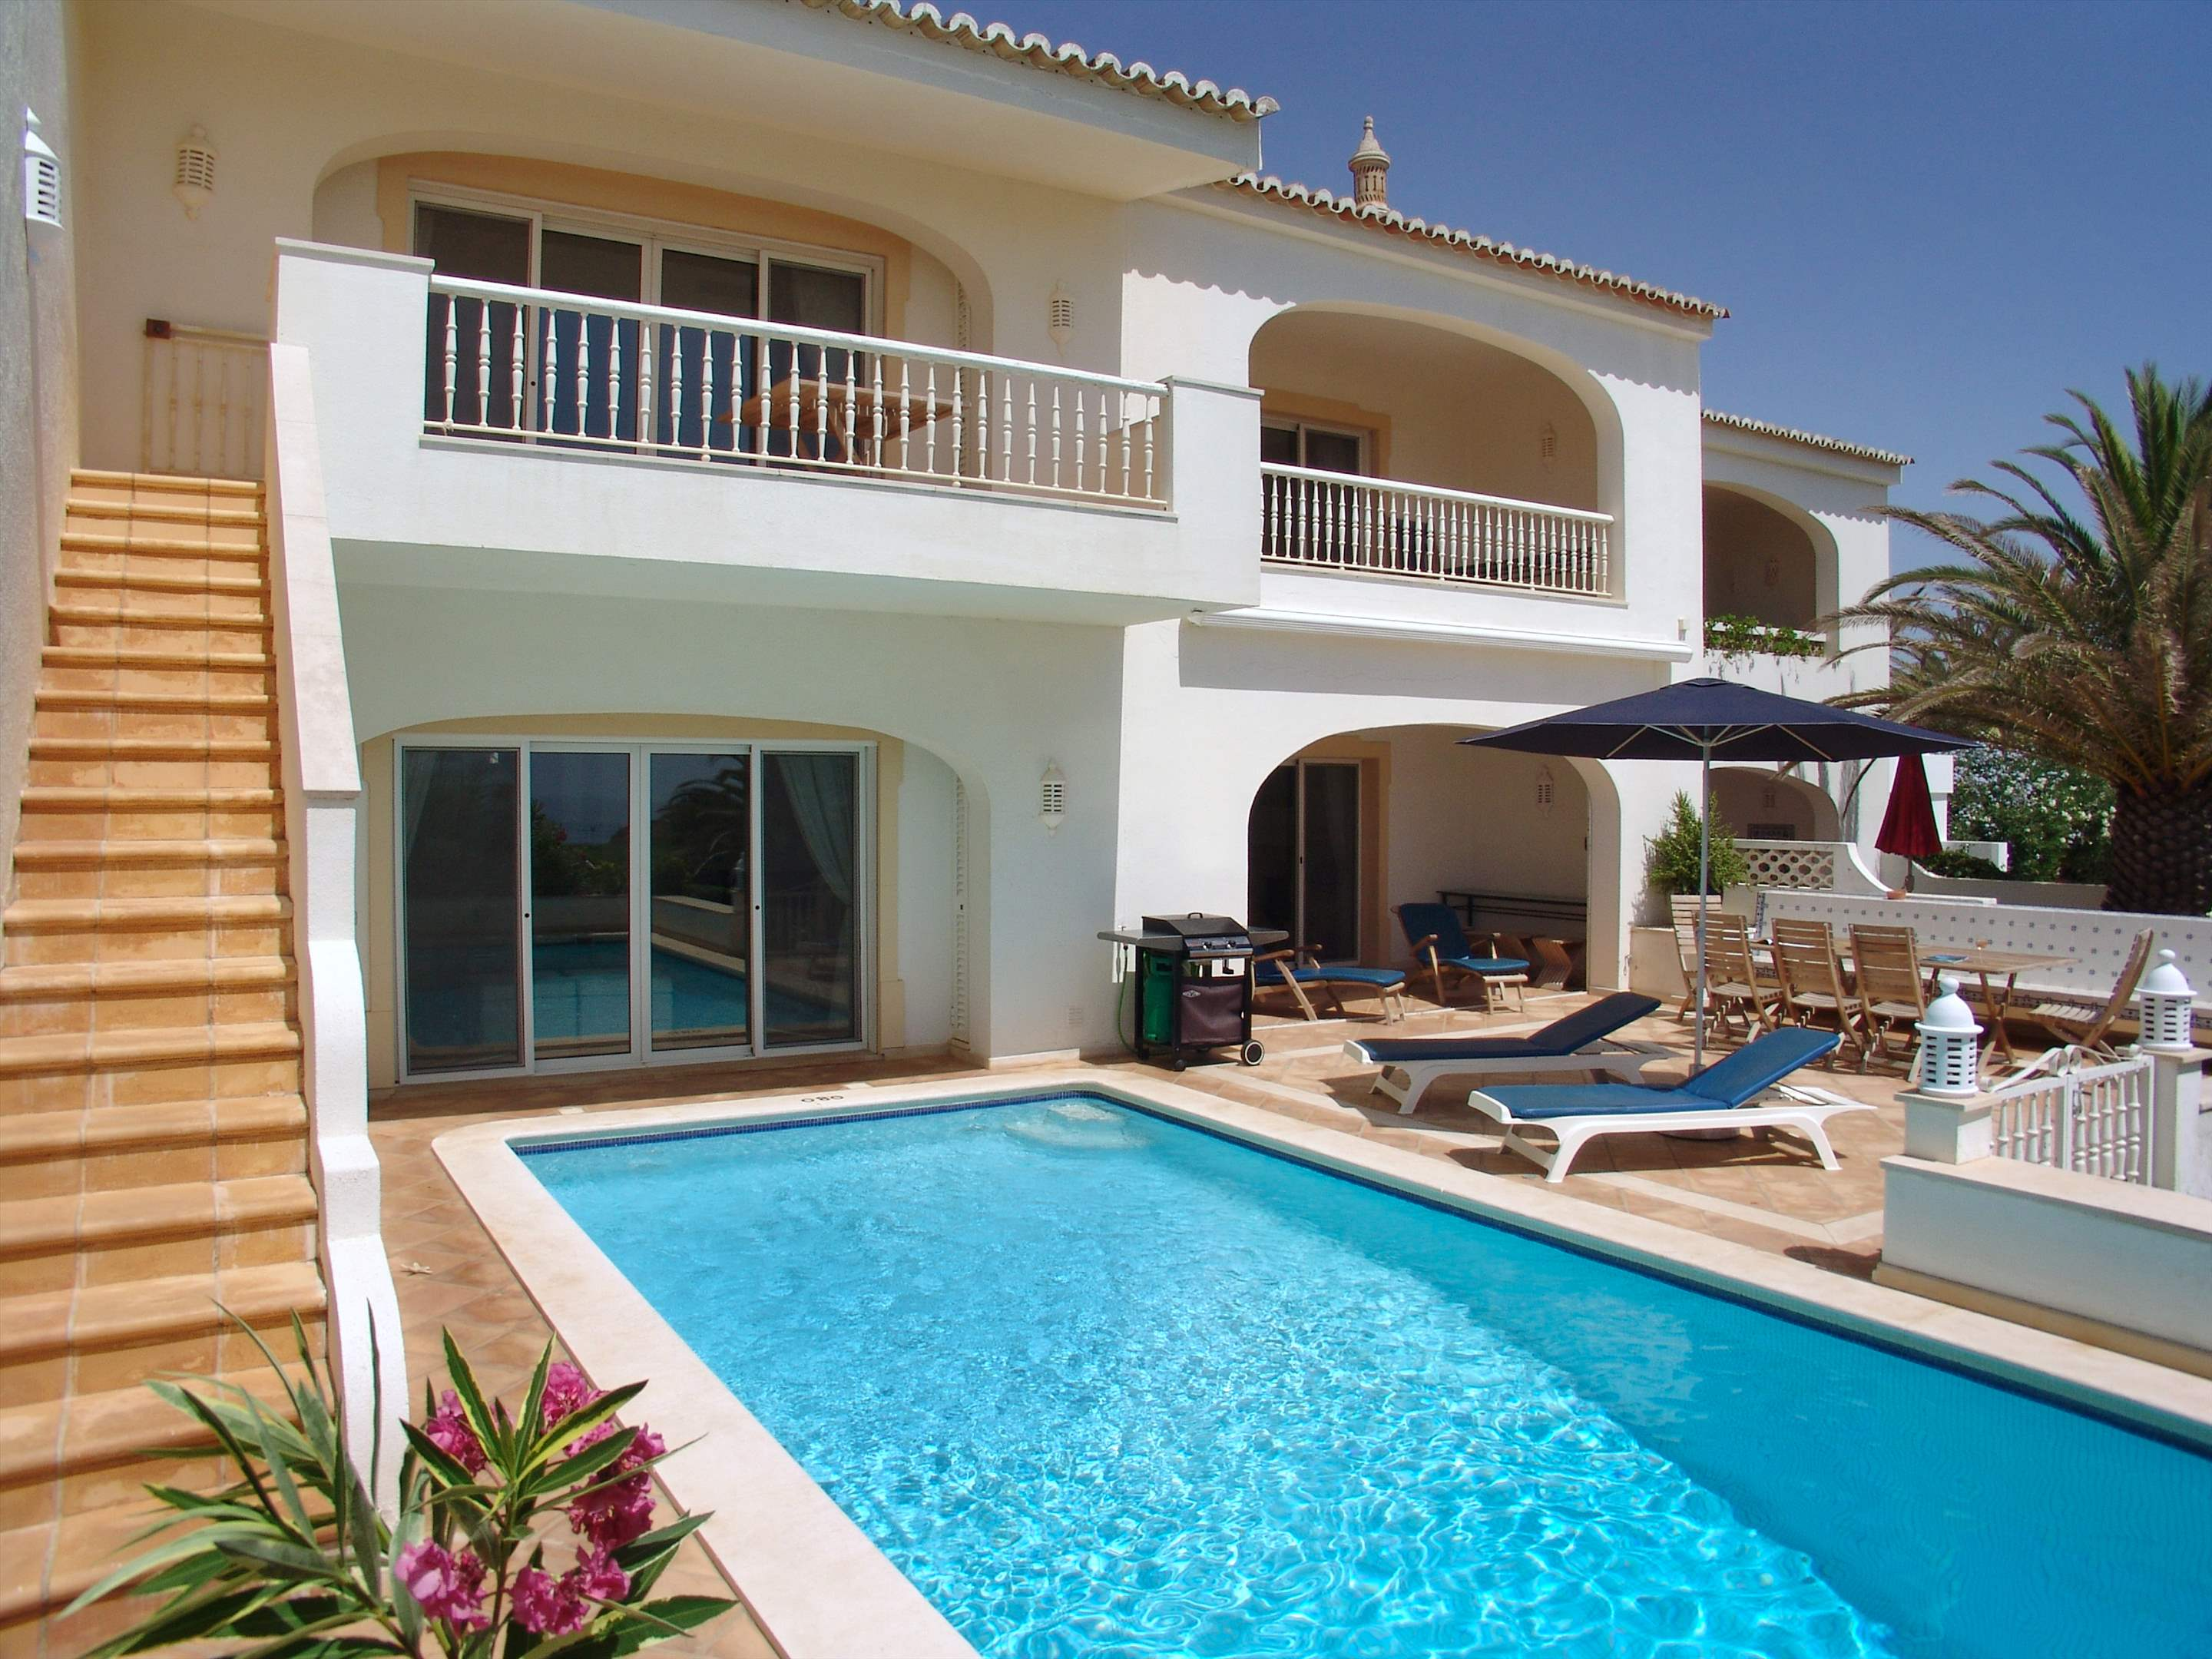 Villas Louisa, 3 bedroom, 3 bedroom villa in Vale do Lobo, Algarve